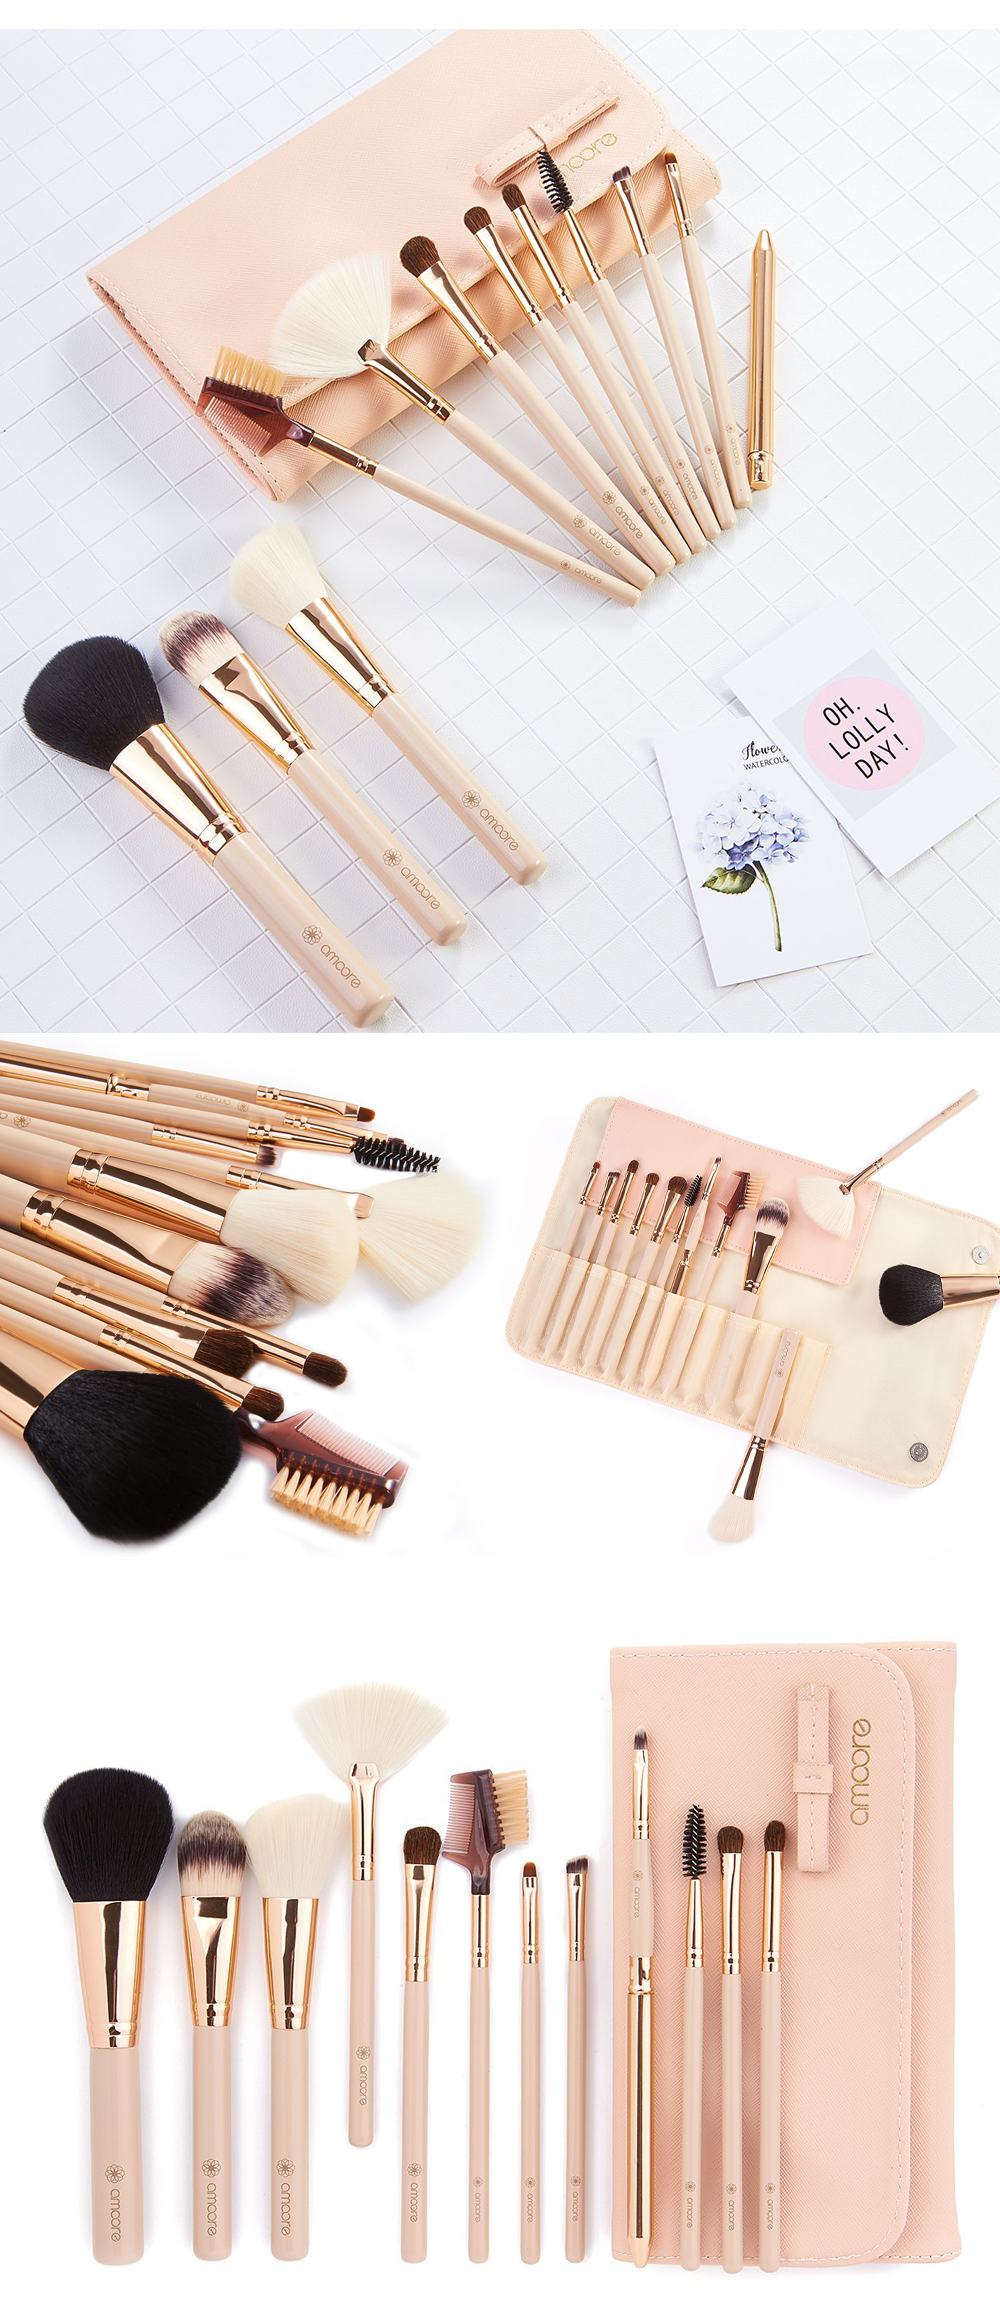 21 Beautifully Packaged Professional Makeup Brush Sets